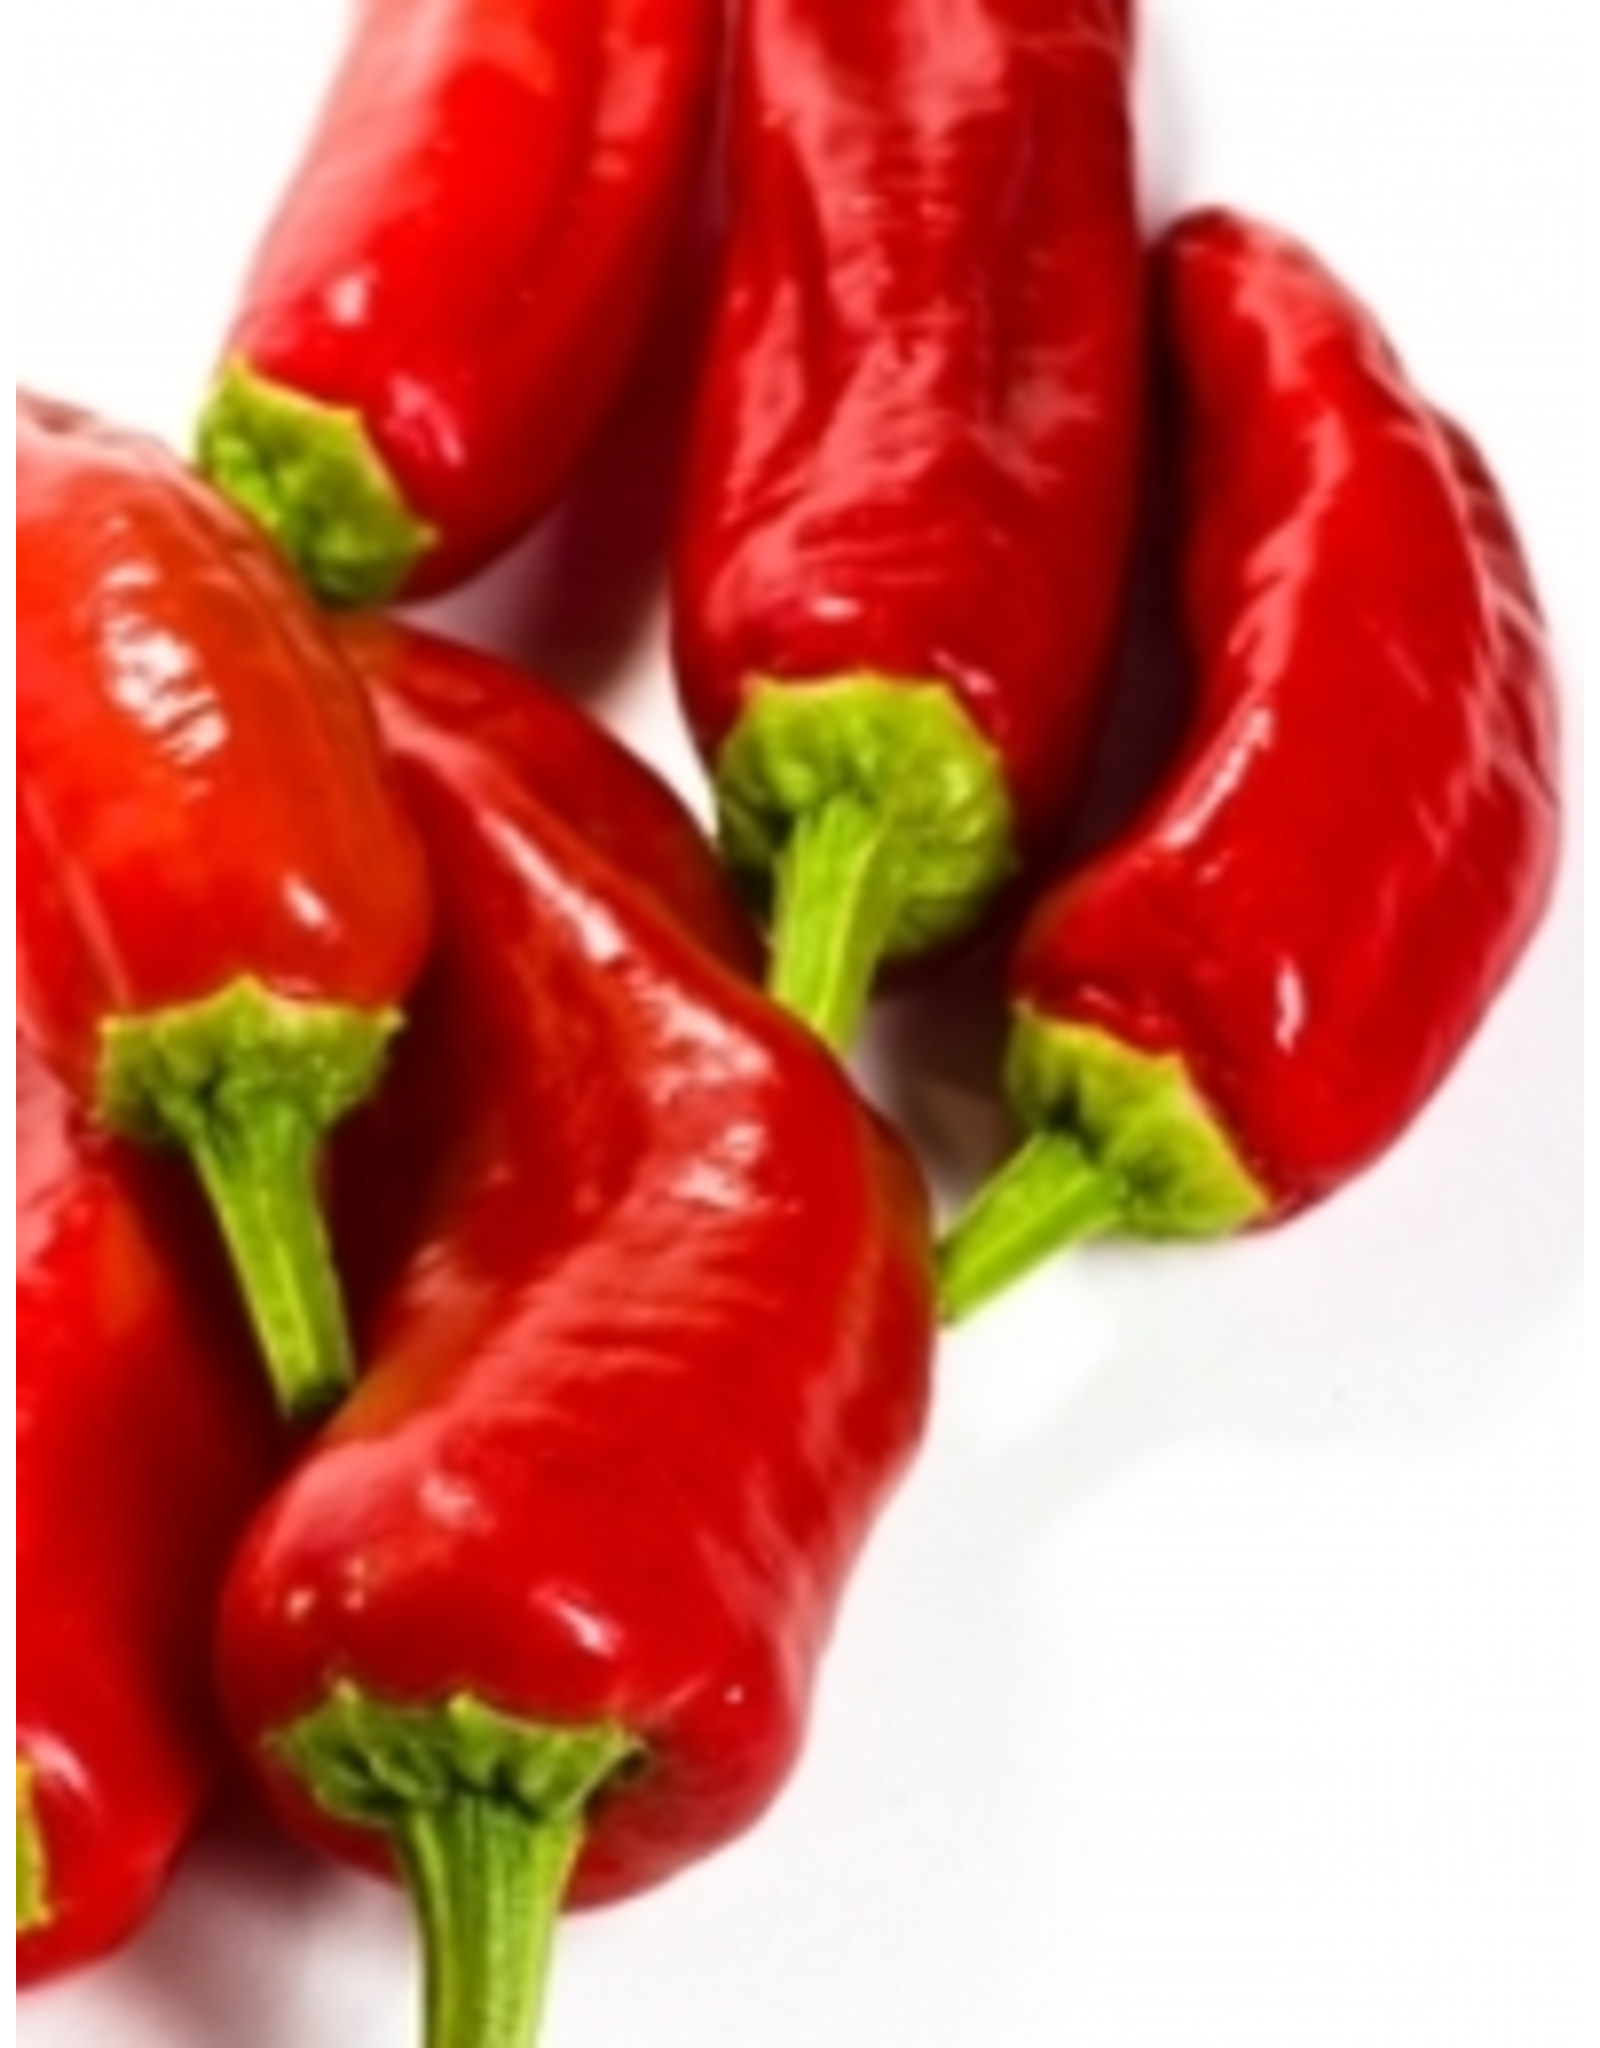 Fused Cayenne Chili Spicy